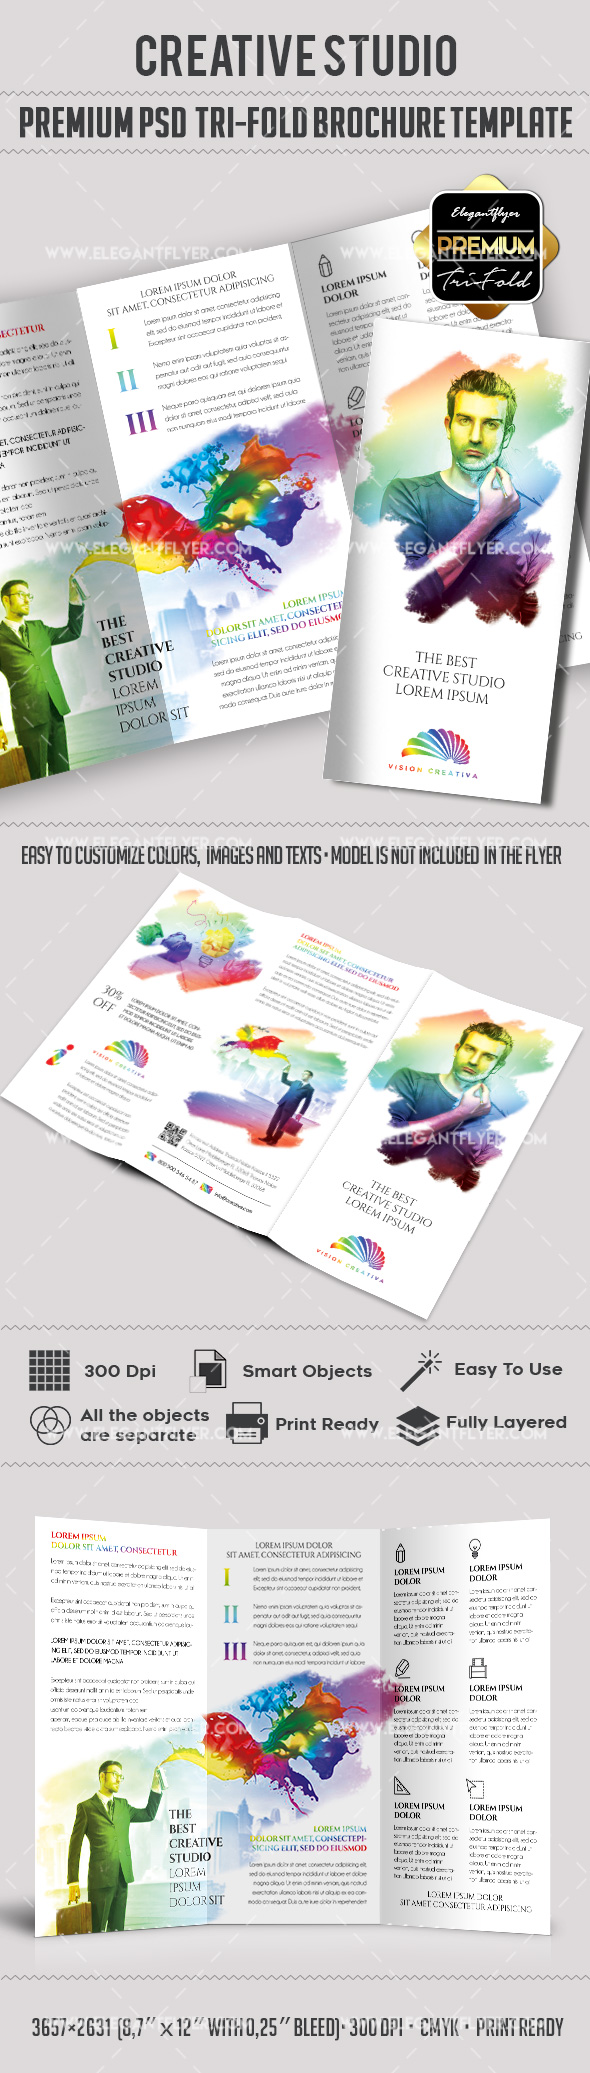 Brochure for Creative Studio